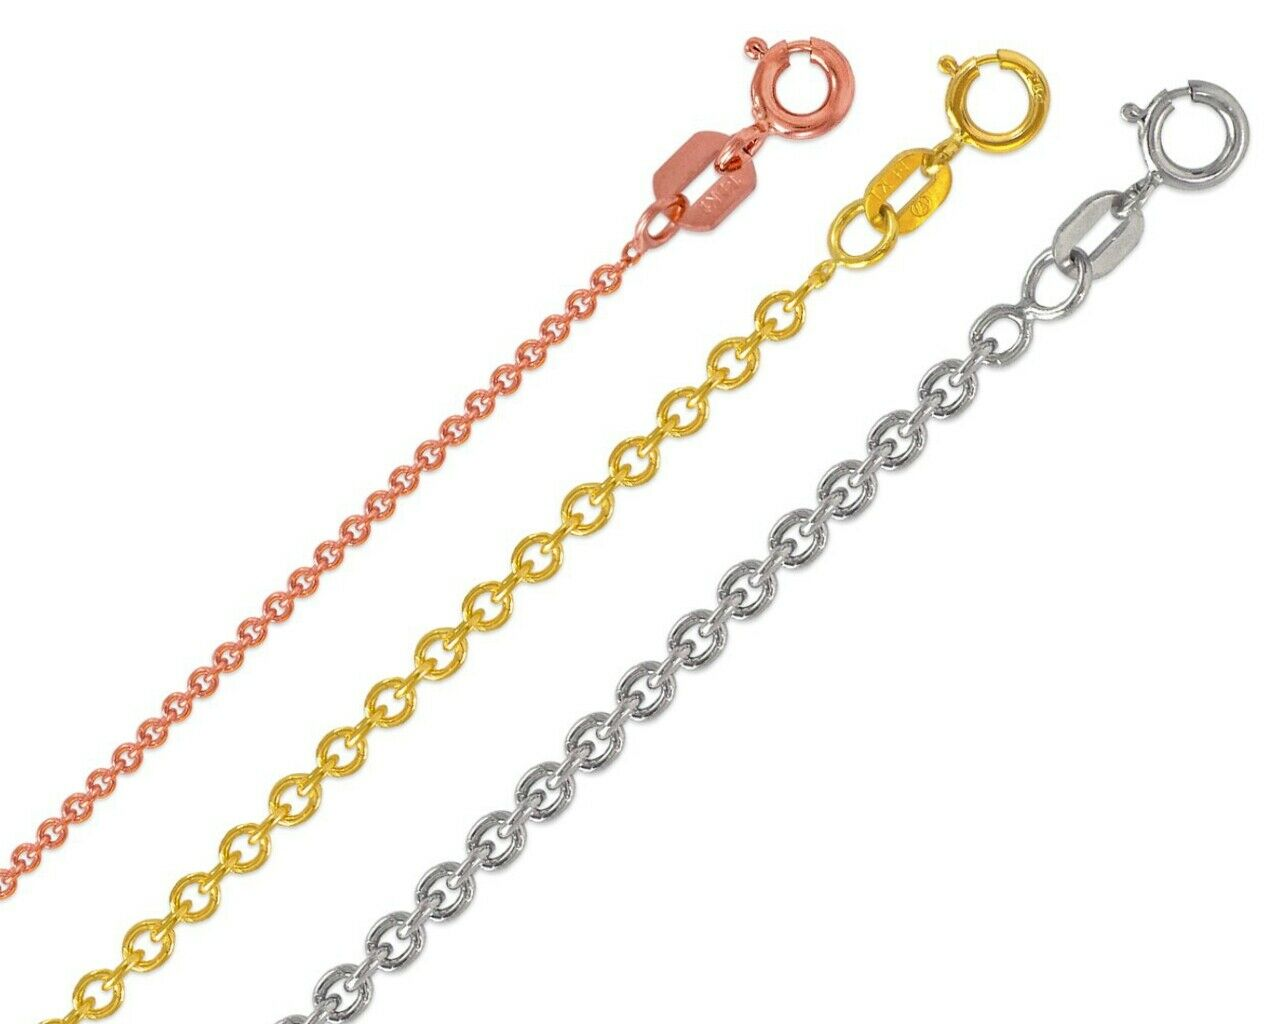 Solid 14K Yellow Gold 18 Twisted Curb Link Chain Necklace 2.3mm 1.9 grams